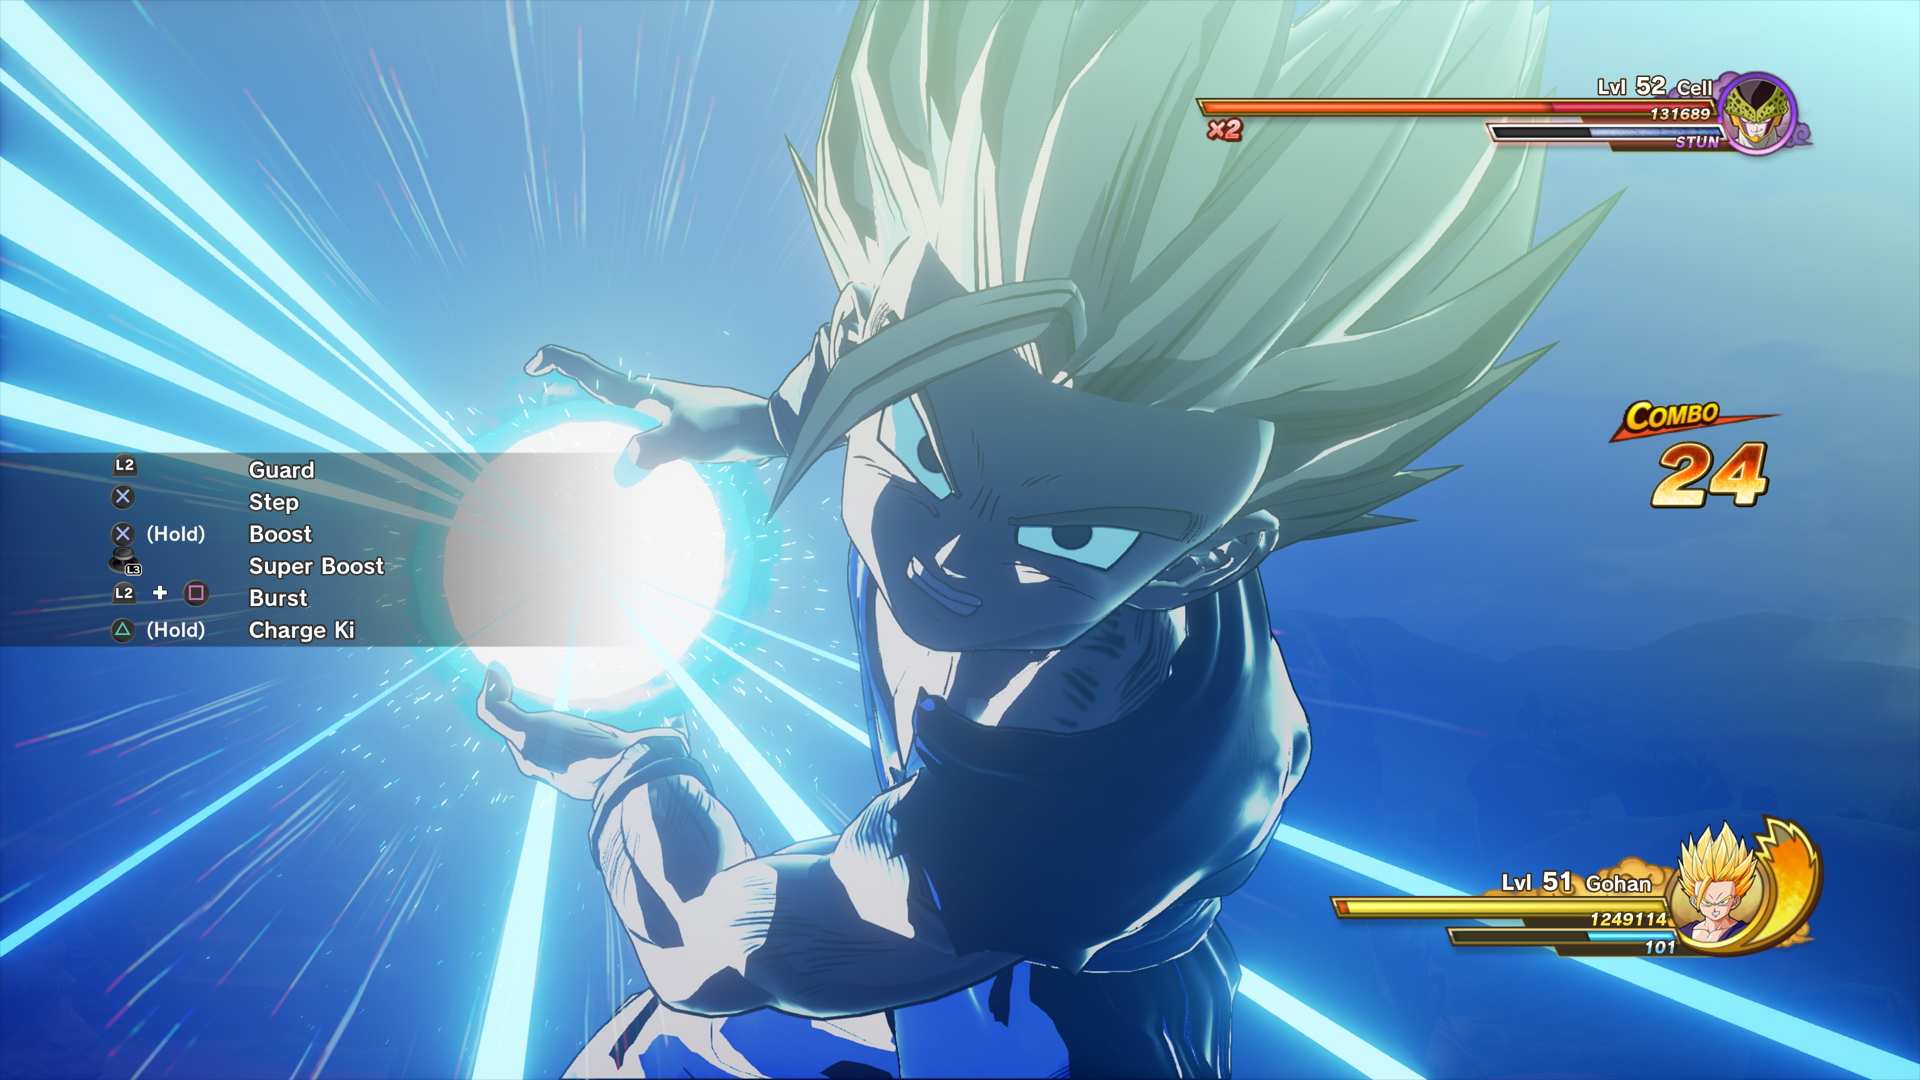 Dragon Ball Z Kakarot To Launch On January 17th On Pc And Consoles